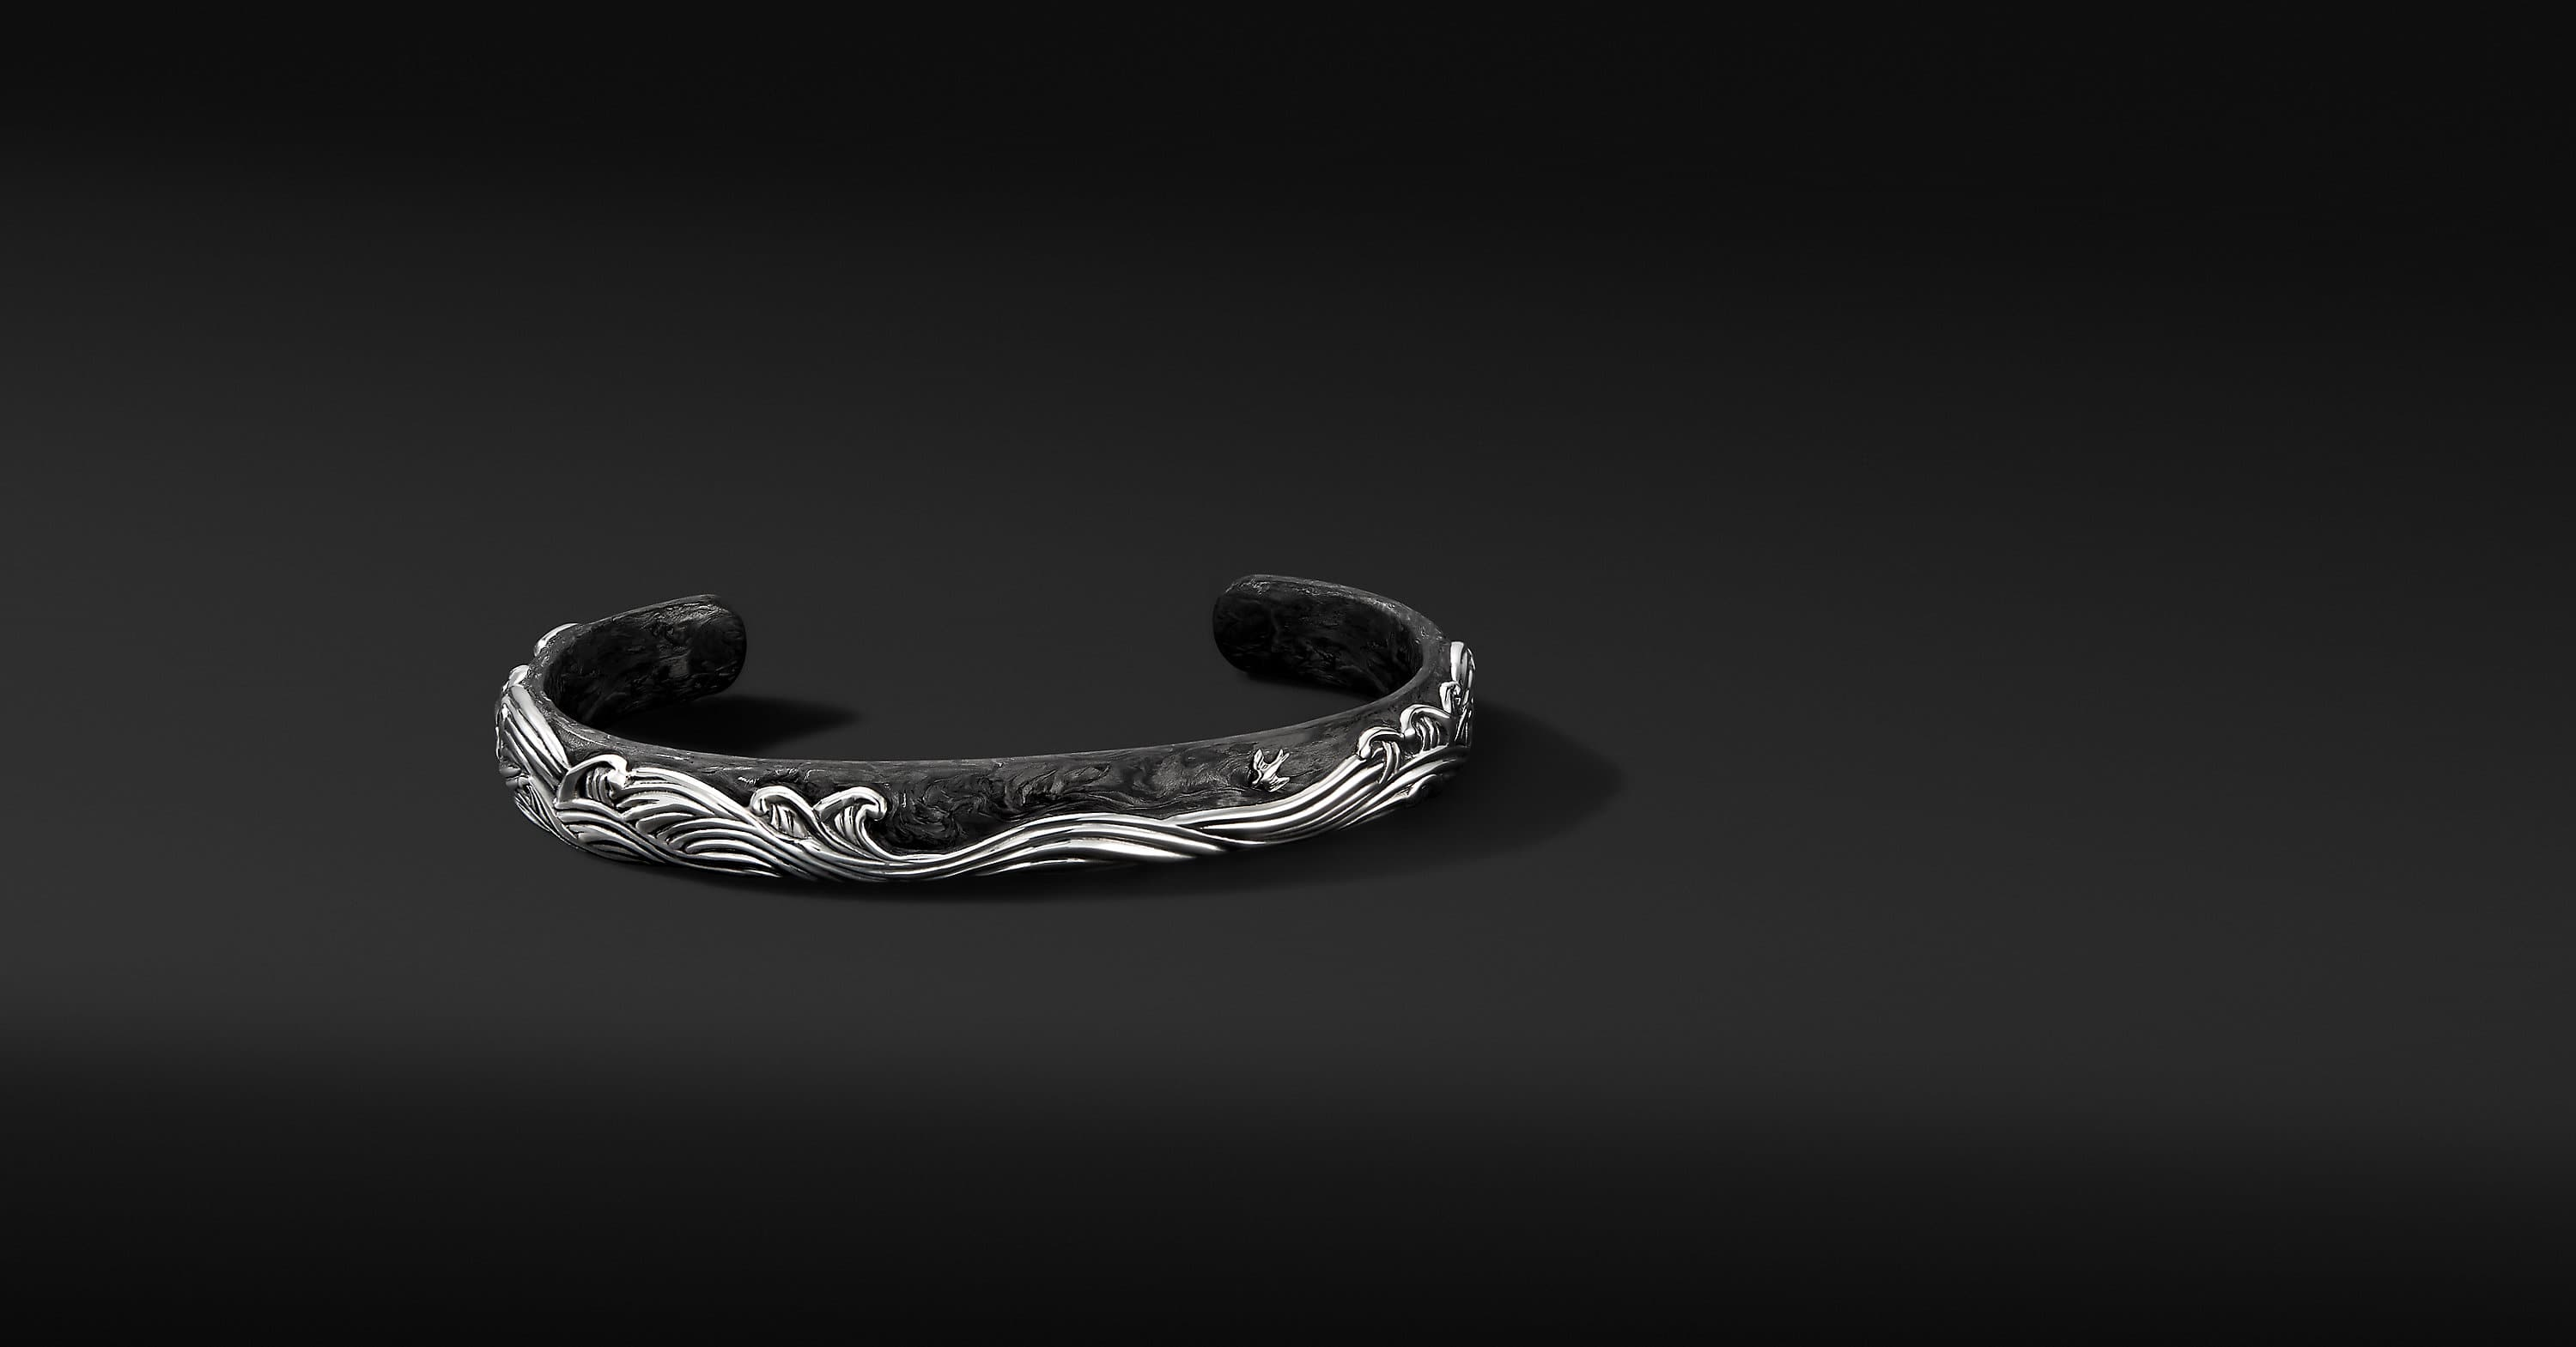 Waves Cuff Bracelet, 9mm